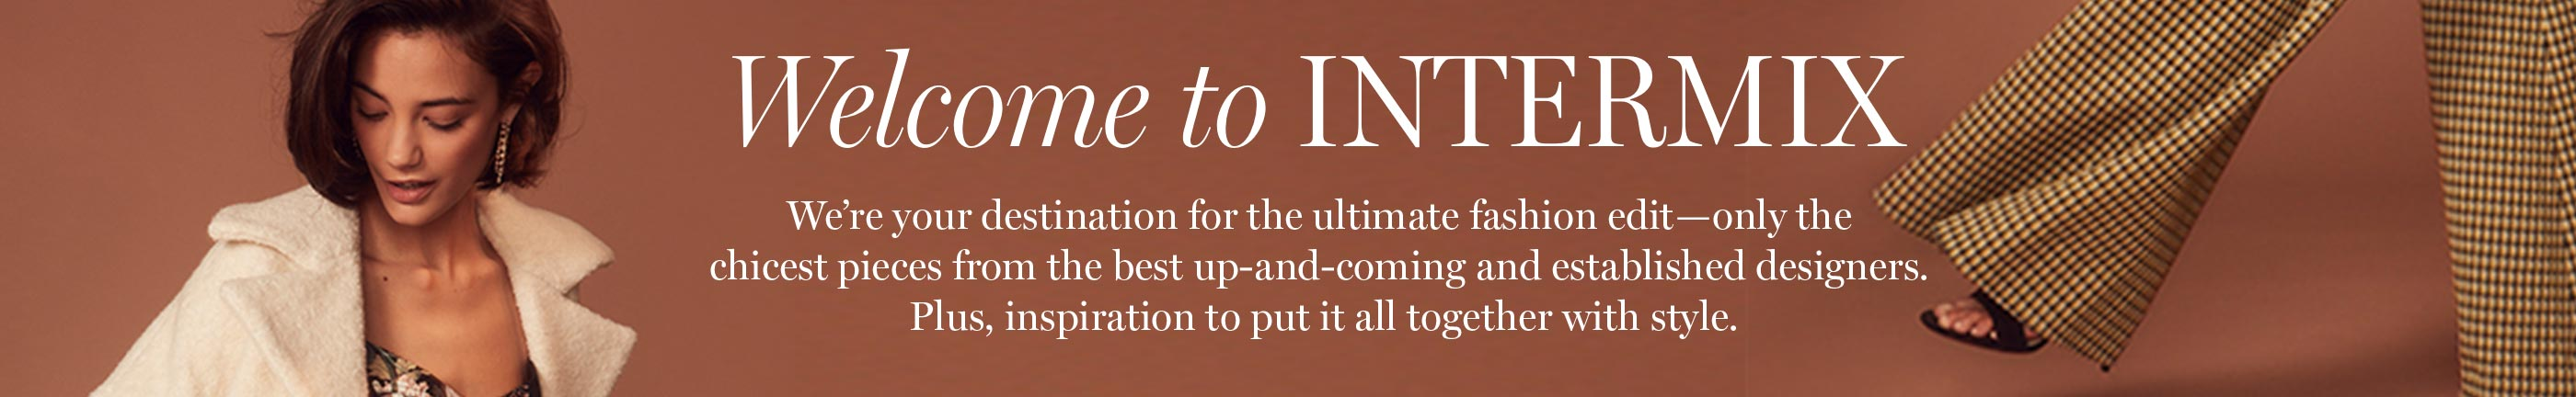 Welcome to INTERMIX